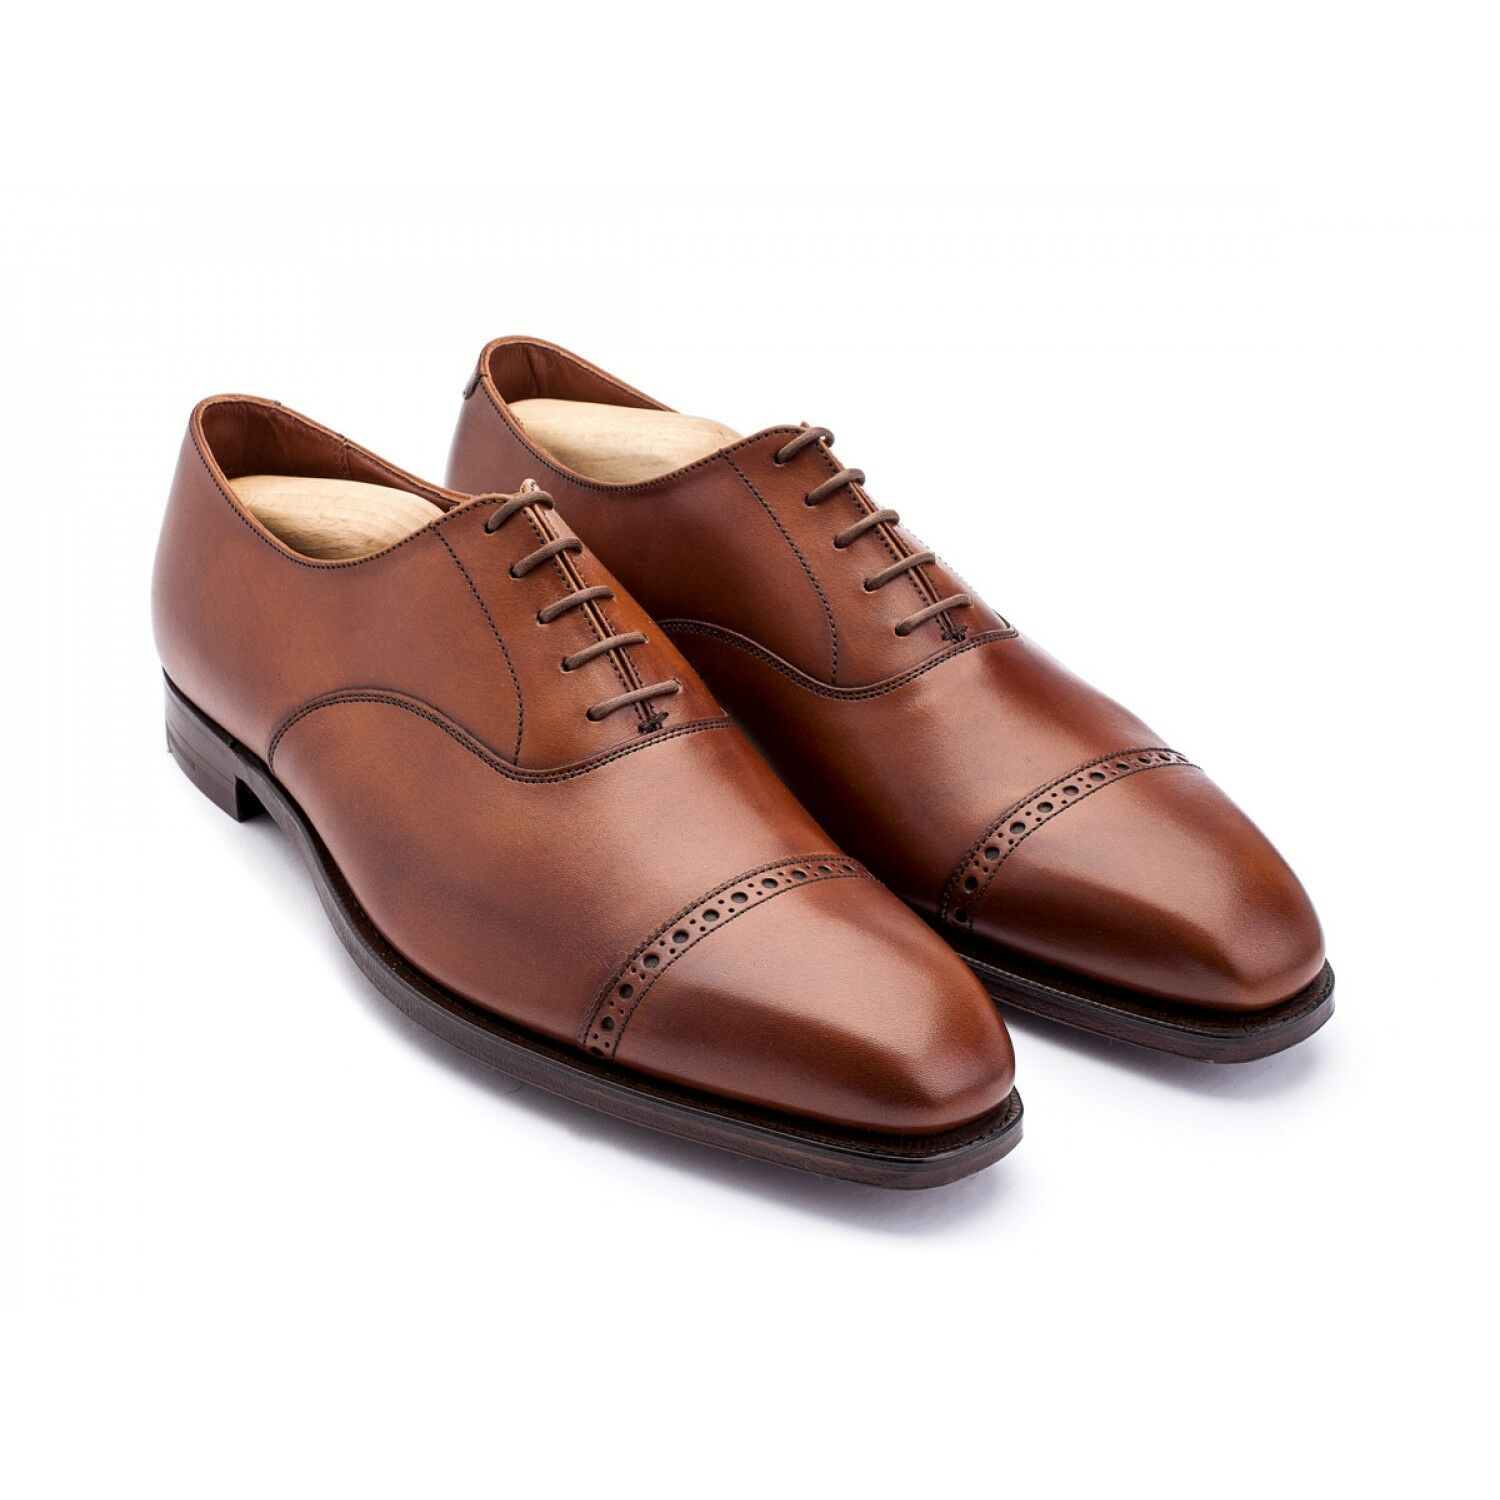 G.J. Cleverley Charles Tan Burnished Calf